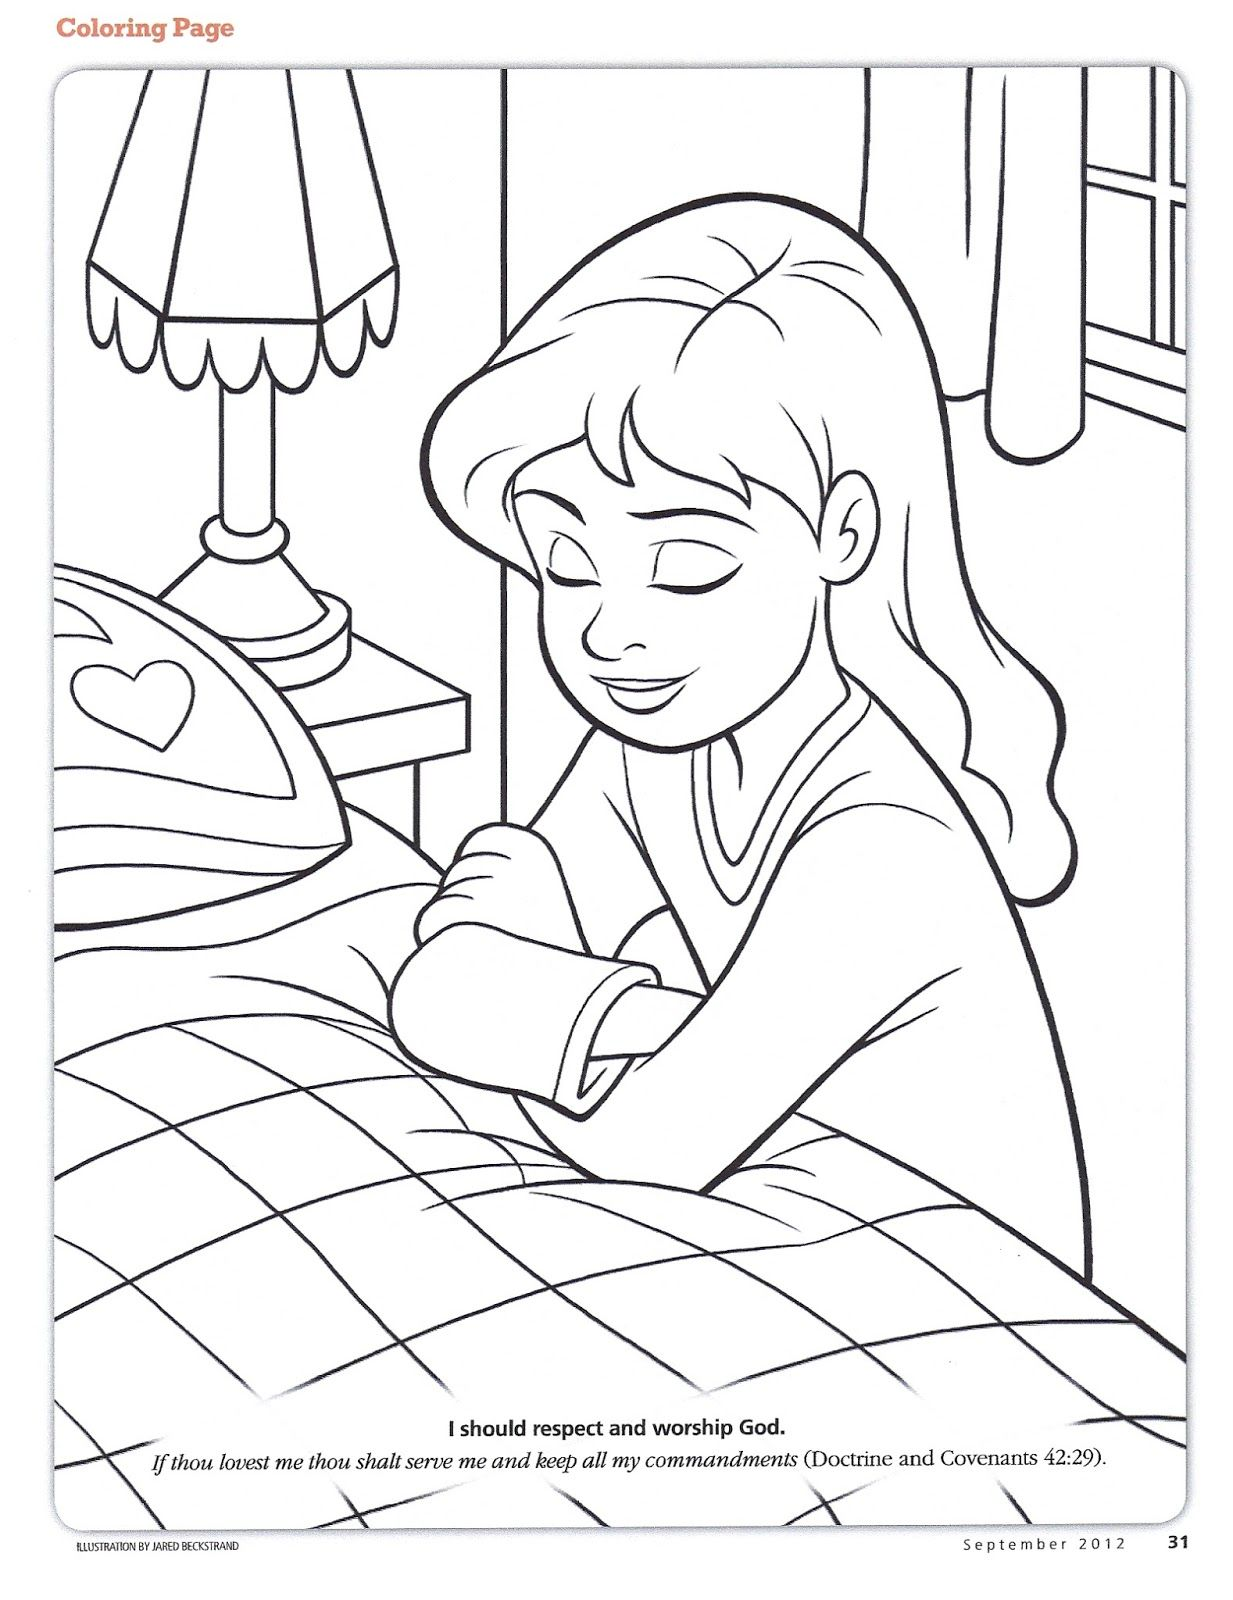 View source image Lds coloring pages, Children praying